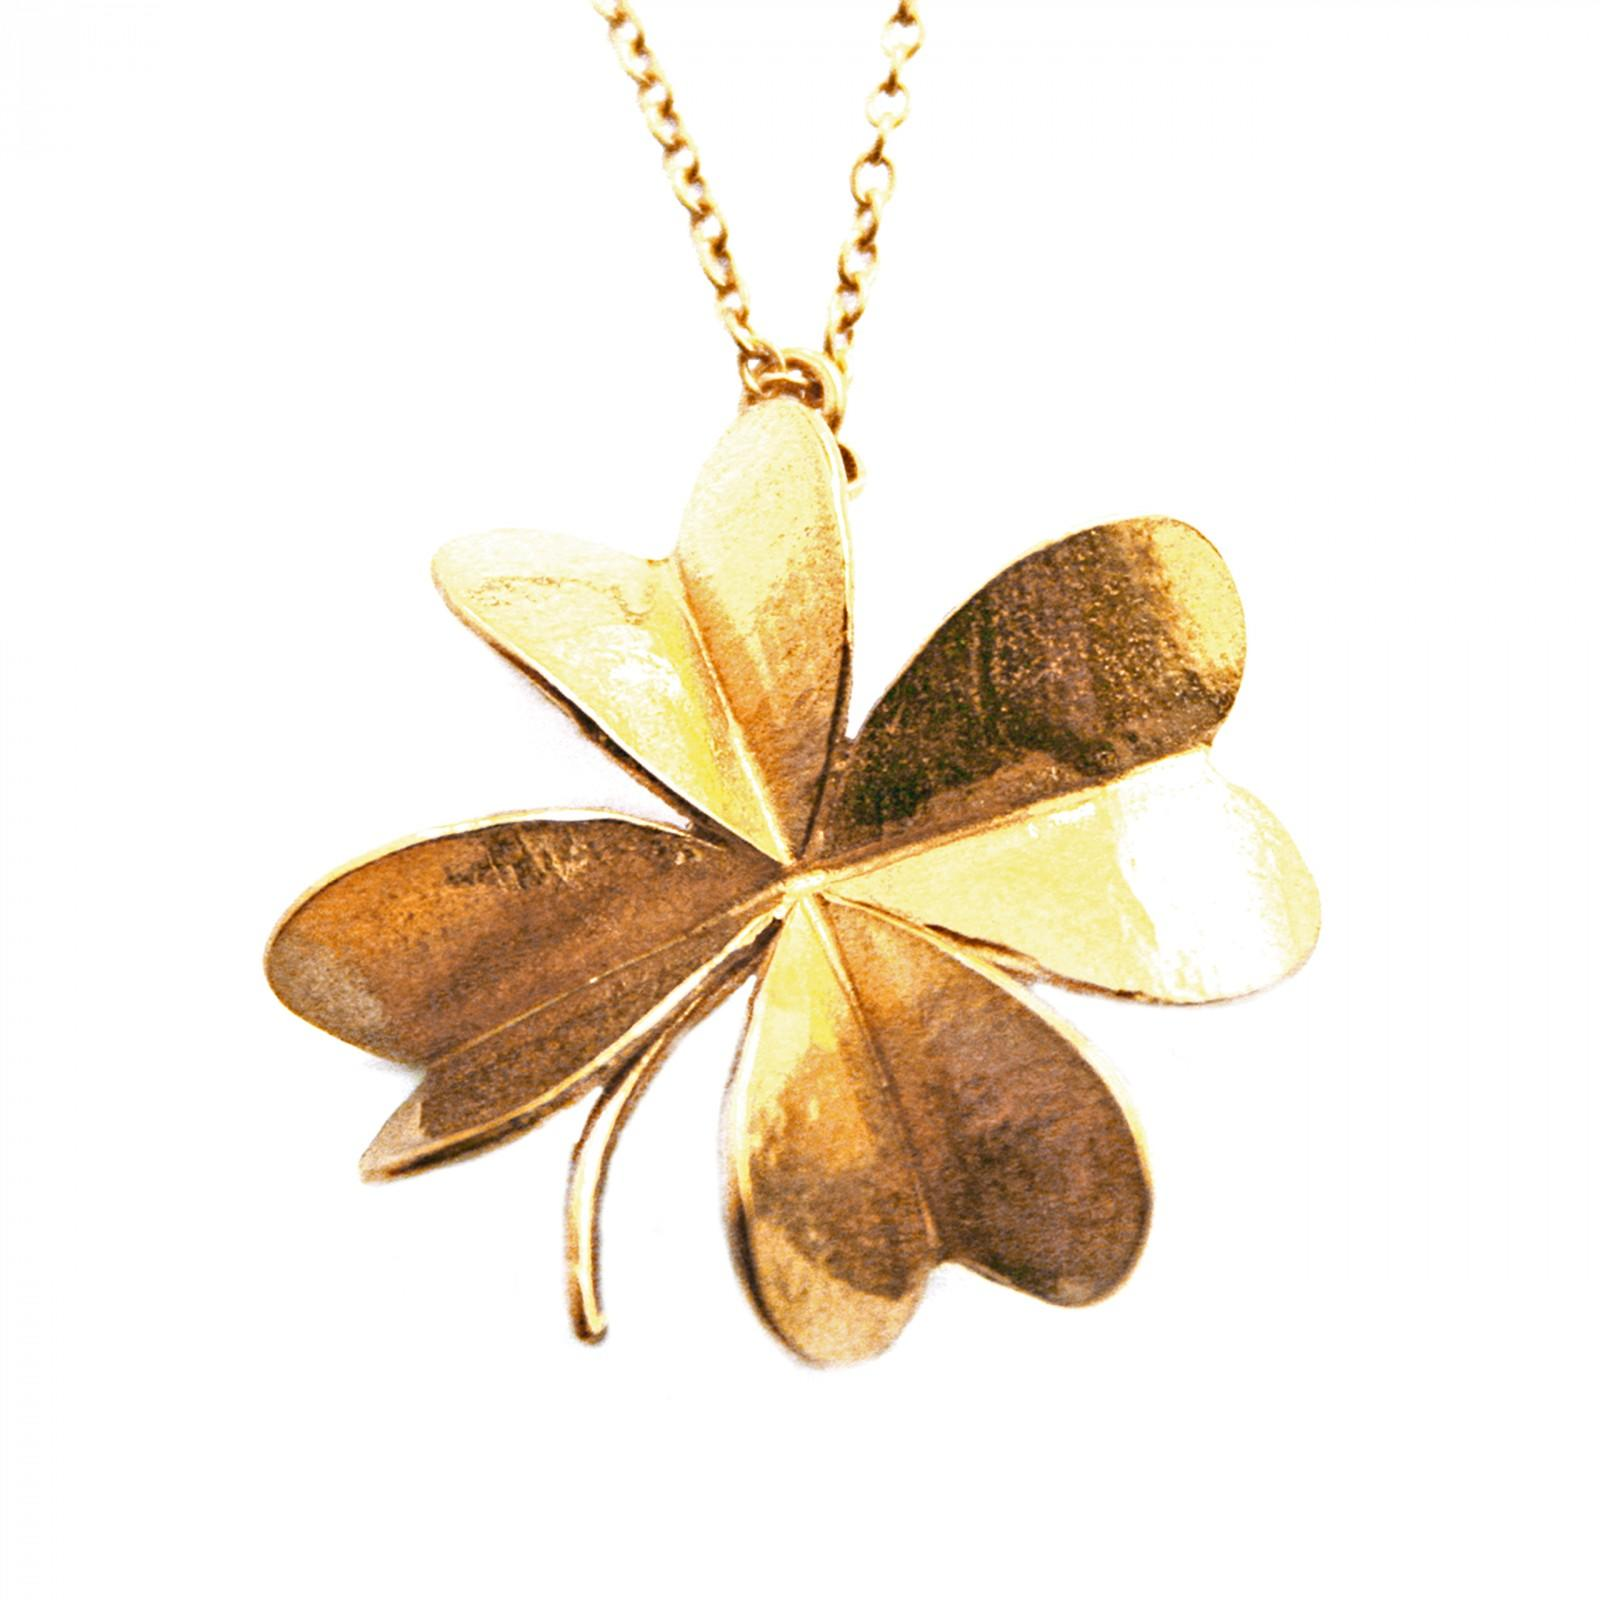 Large lucky clover necklace sterling silver an gold plated £150 (Available In Store Only)